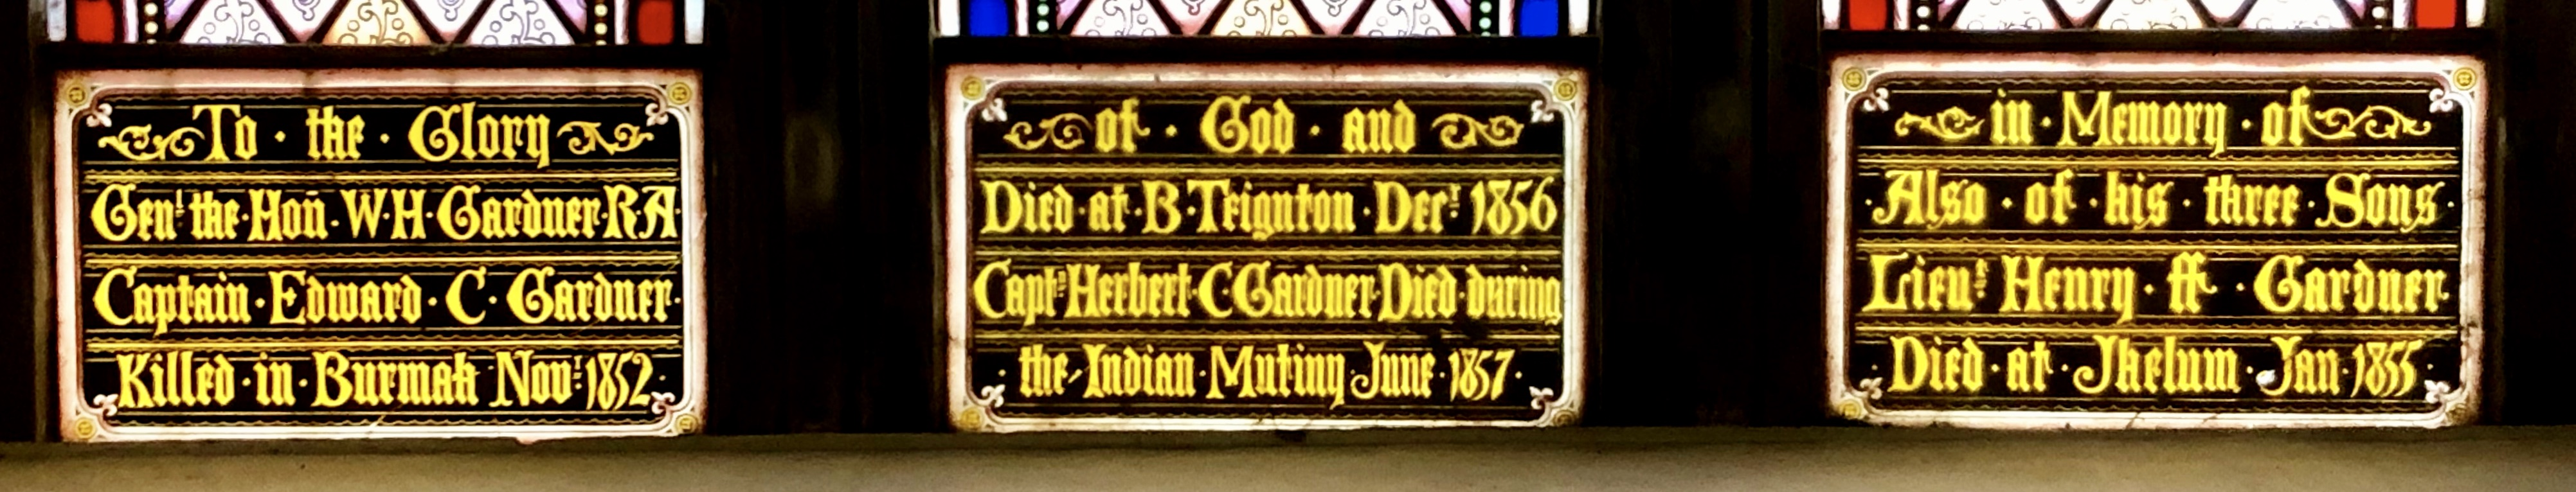 Dedication on Memorial Window,Bishopsteignton Church